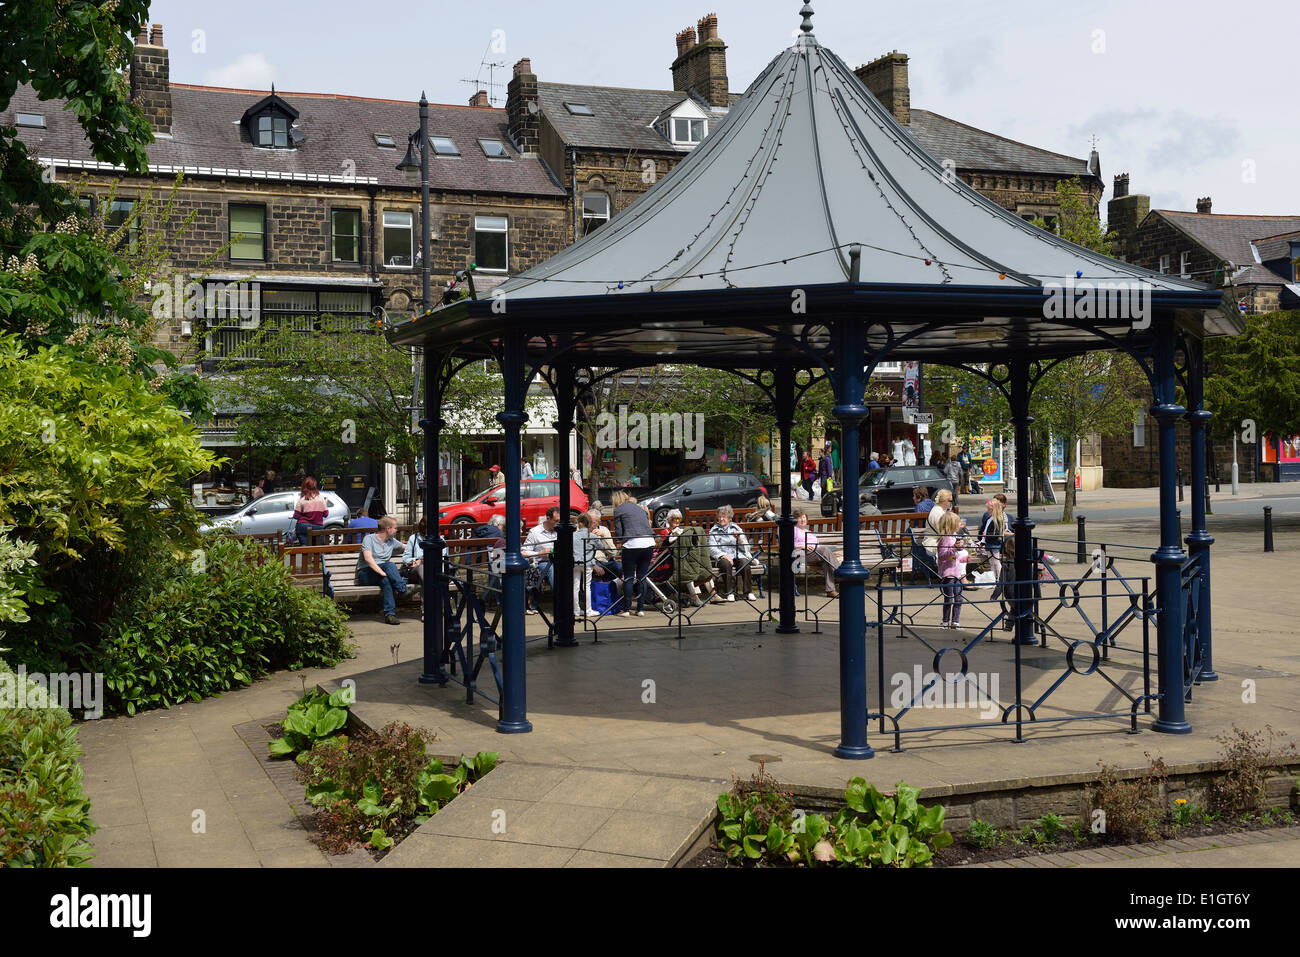 Bandstand at Ilkley, West Yorkshire. UK - Stock Image